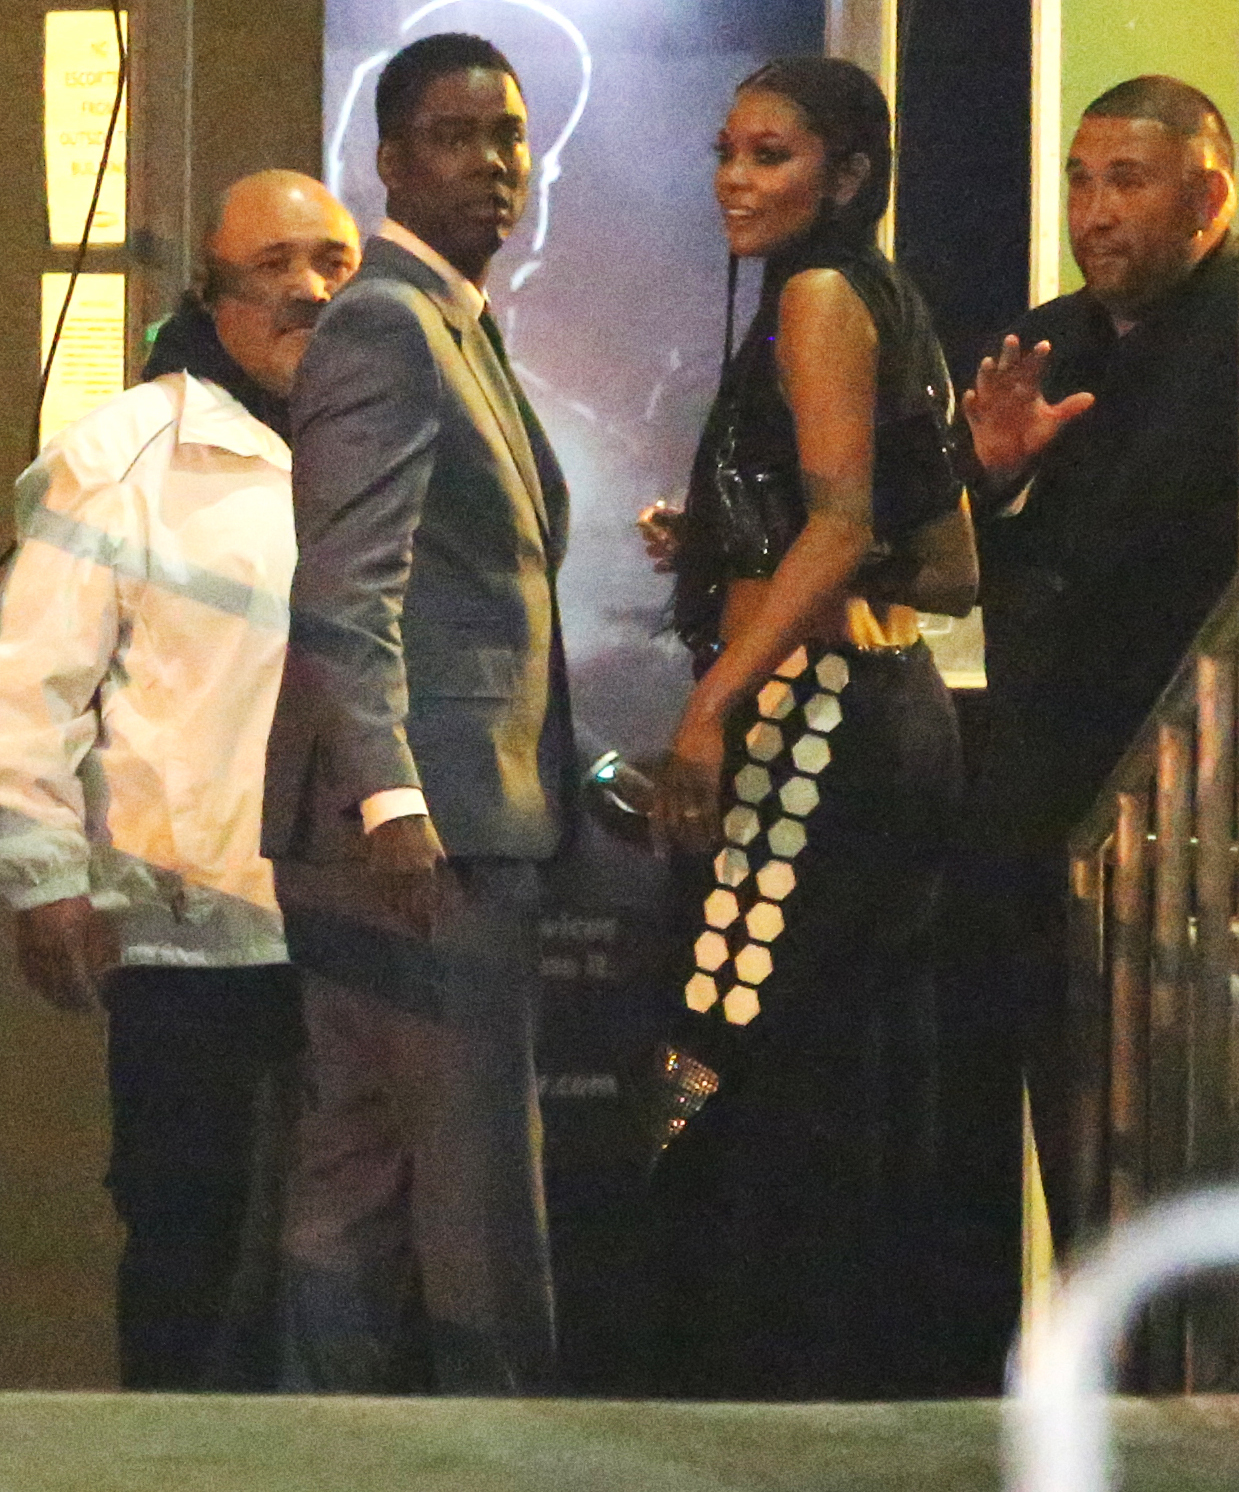 chris-rock-gabrielle-union-diana-ross-birthday - Chris Rock, Gabrielle Union, Stevie Wonder and DJ Khaled also attended the bash.